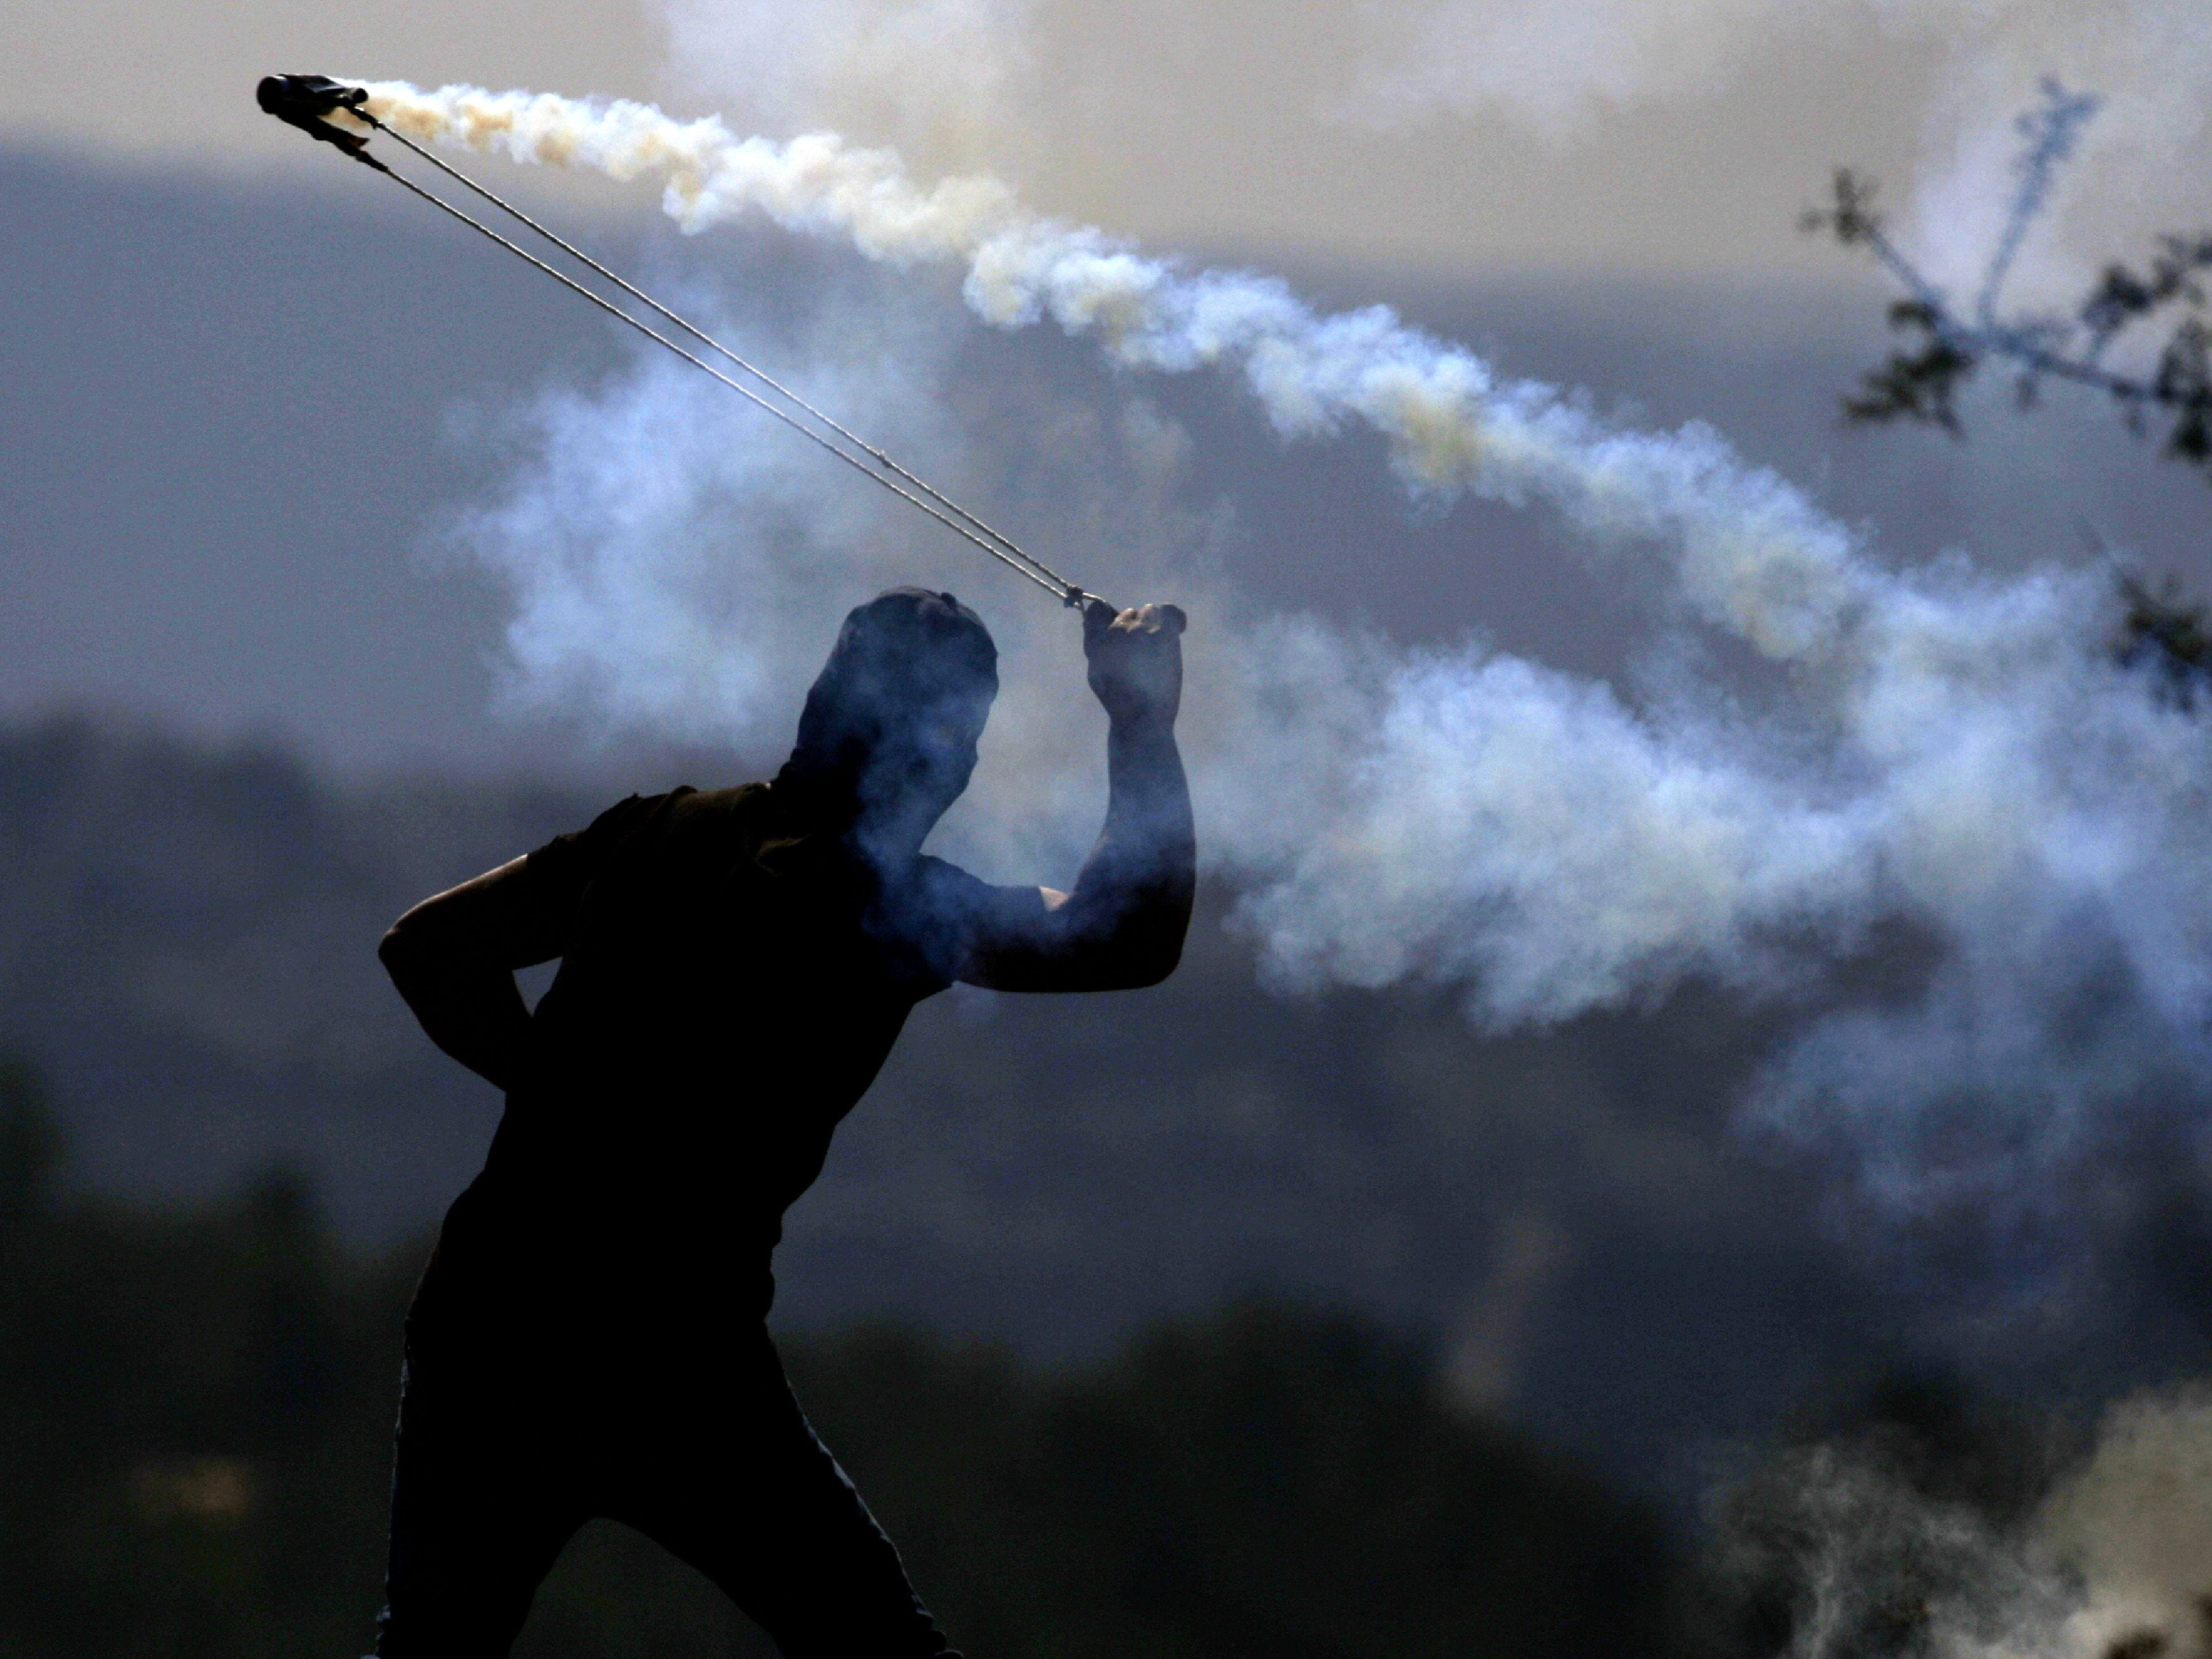 A Palestinian protester throws a tear gas canister towards Israeli soldiers who fired it during a demonstration against Israeli land seizures for Jewish settlements, in the village of Ras Karkar, near Ramallah in the occupied West Bank on November 9, 2018.